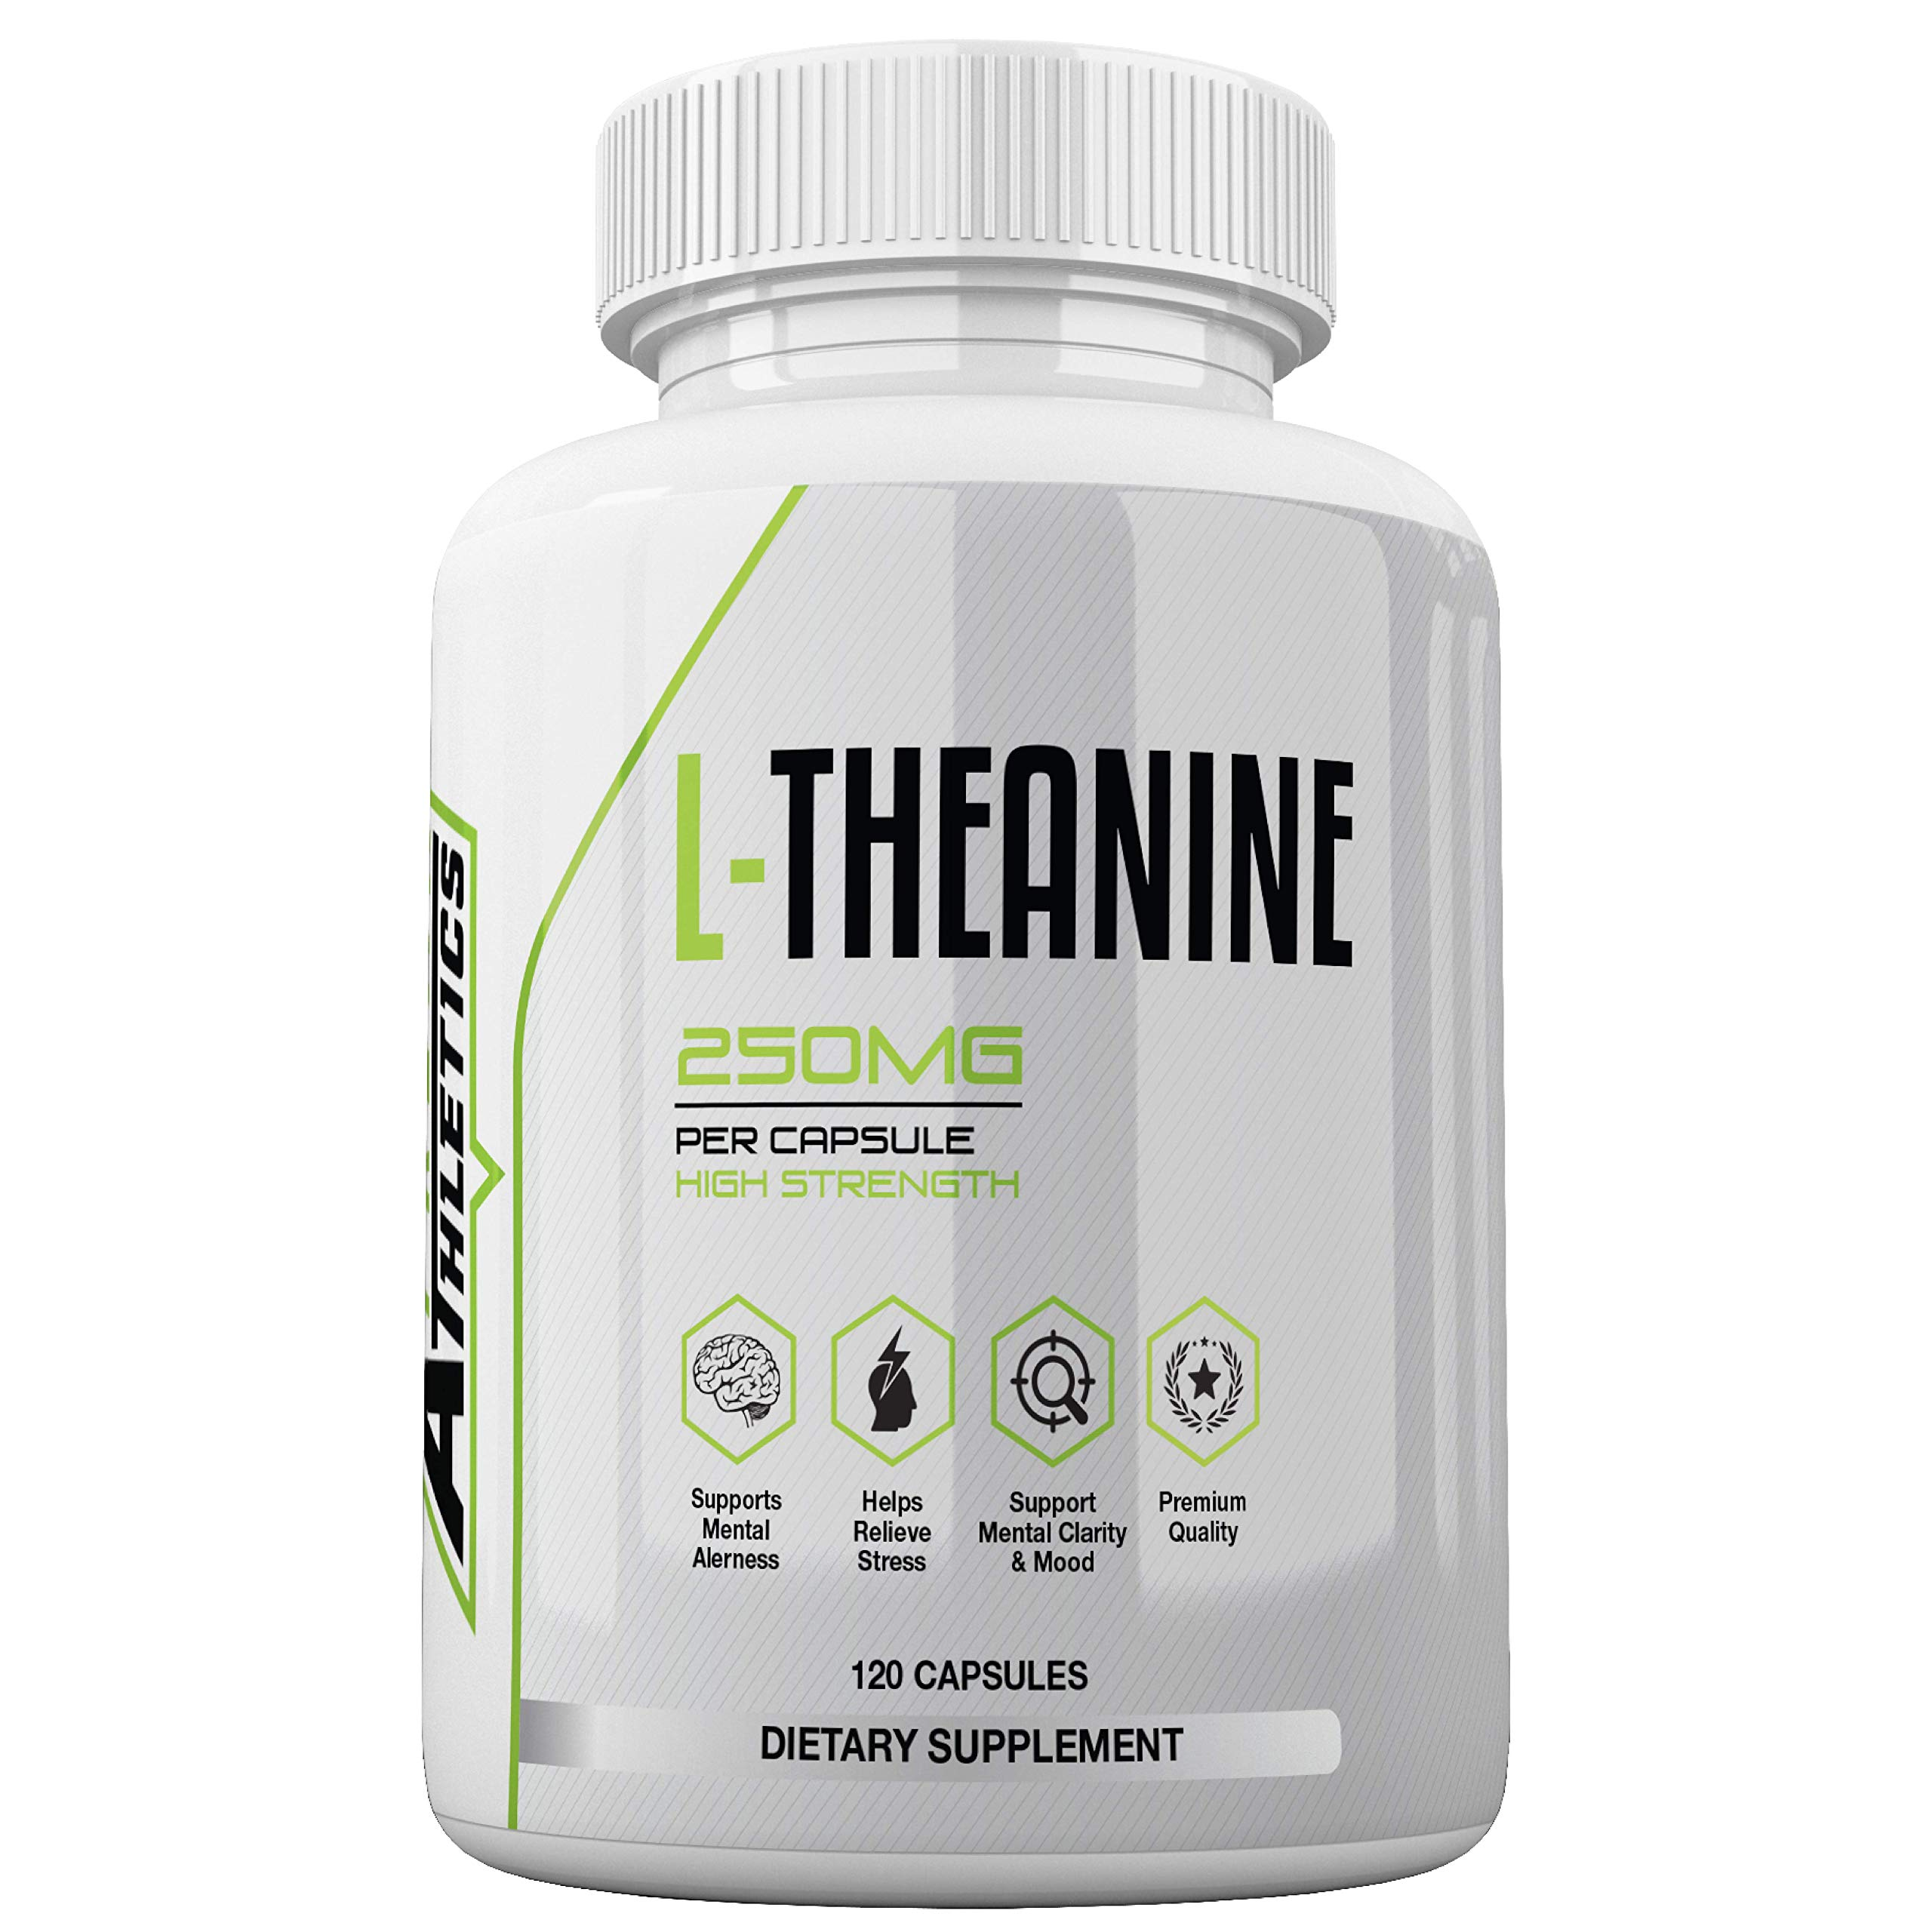 L Theanine Capsules 250mg - Premium Grade L Theanine Tablets by Freak Athletics - 120 Capsules - Suitable for Both Men & Women - Made in The UK High Quality Guaranteed